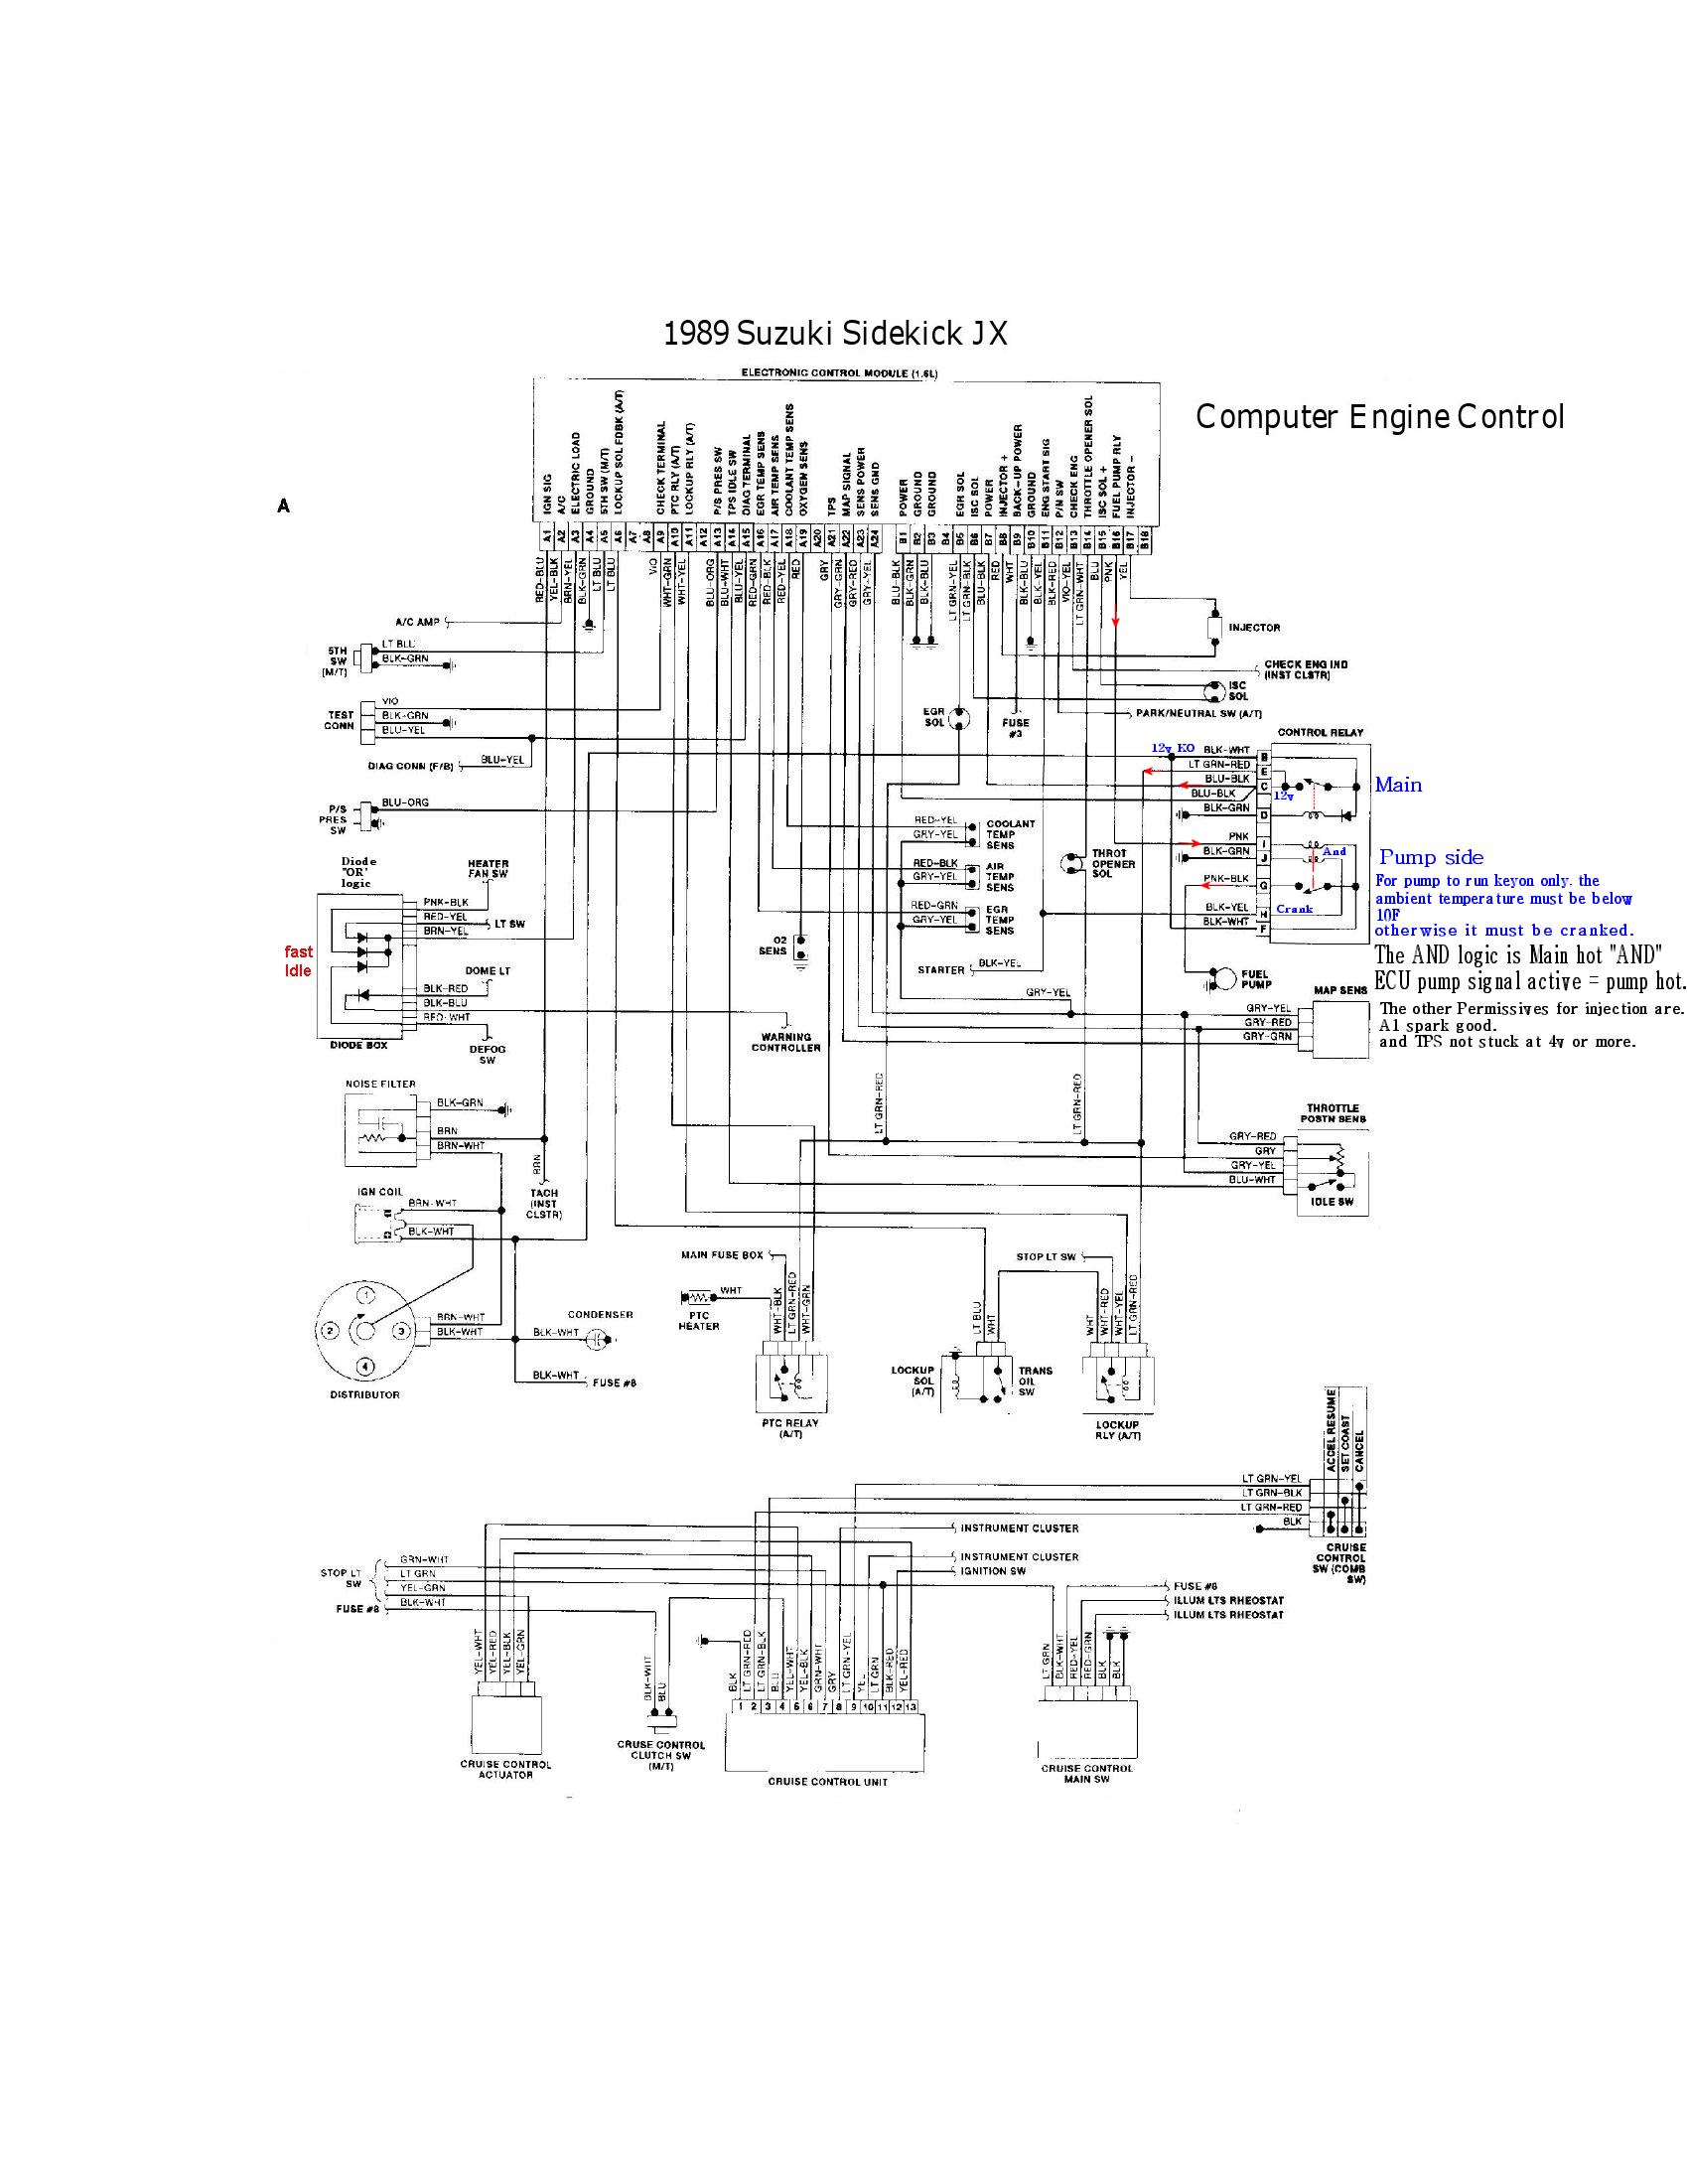 [DIAGRAM] Z31 Ecu Wiring Diagram FULL Version HD Quality